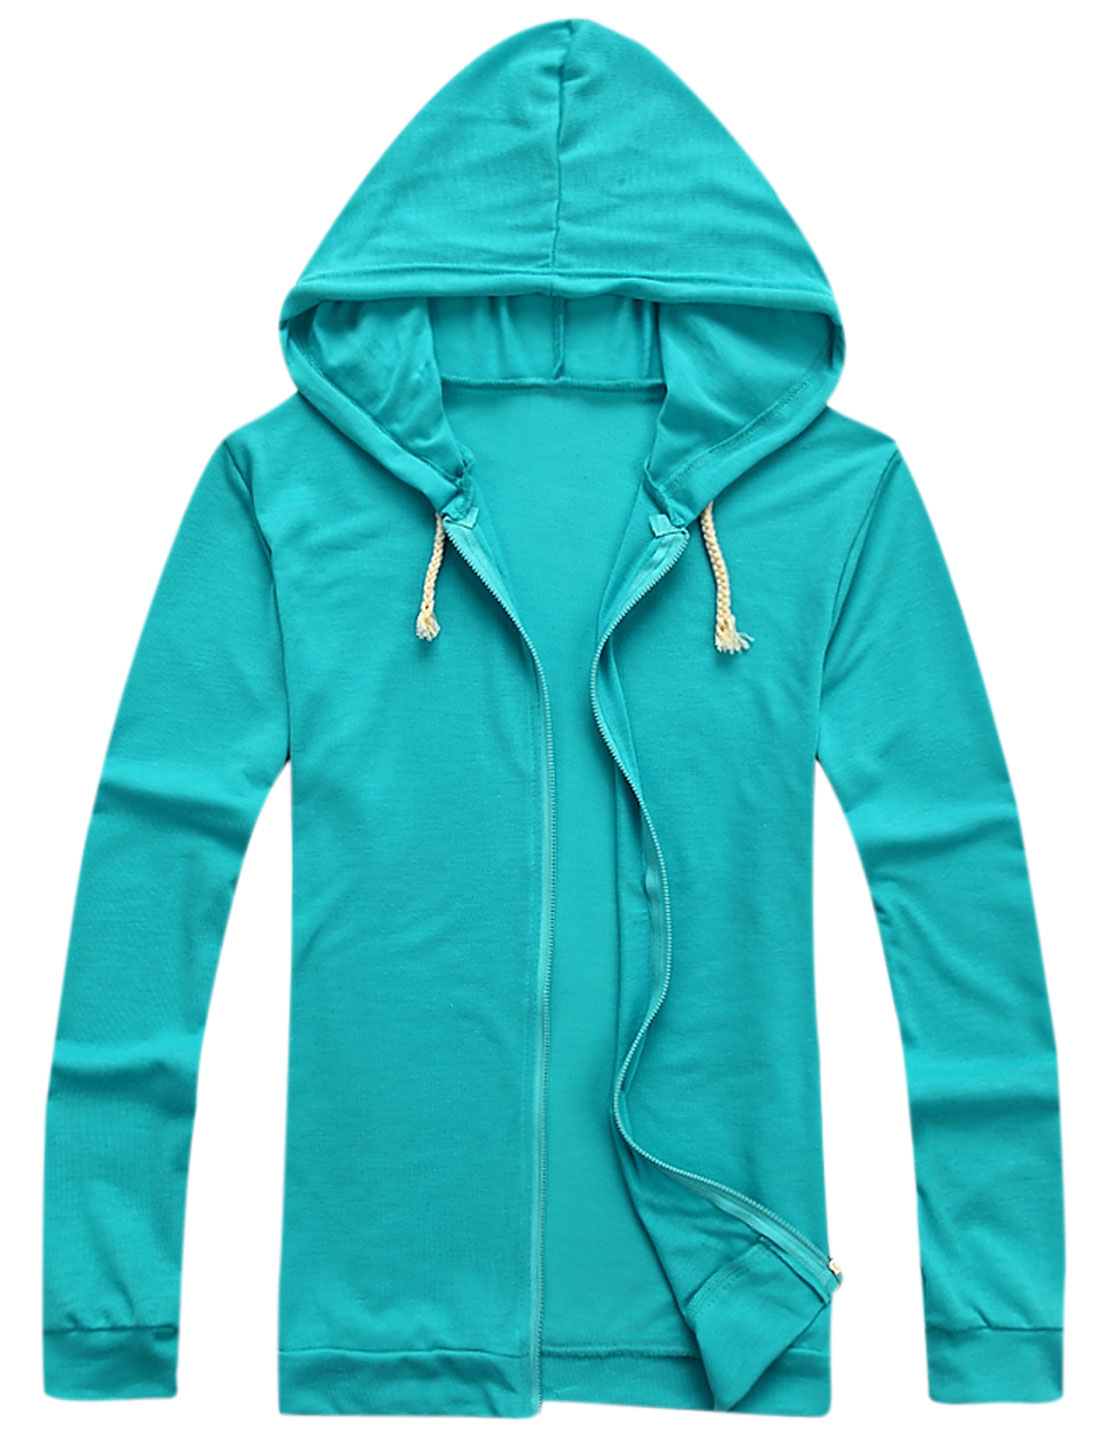 Men Zipper Fastening Long Sleeves Cozy Fit Thin Hooded Jacket Turquoise M